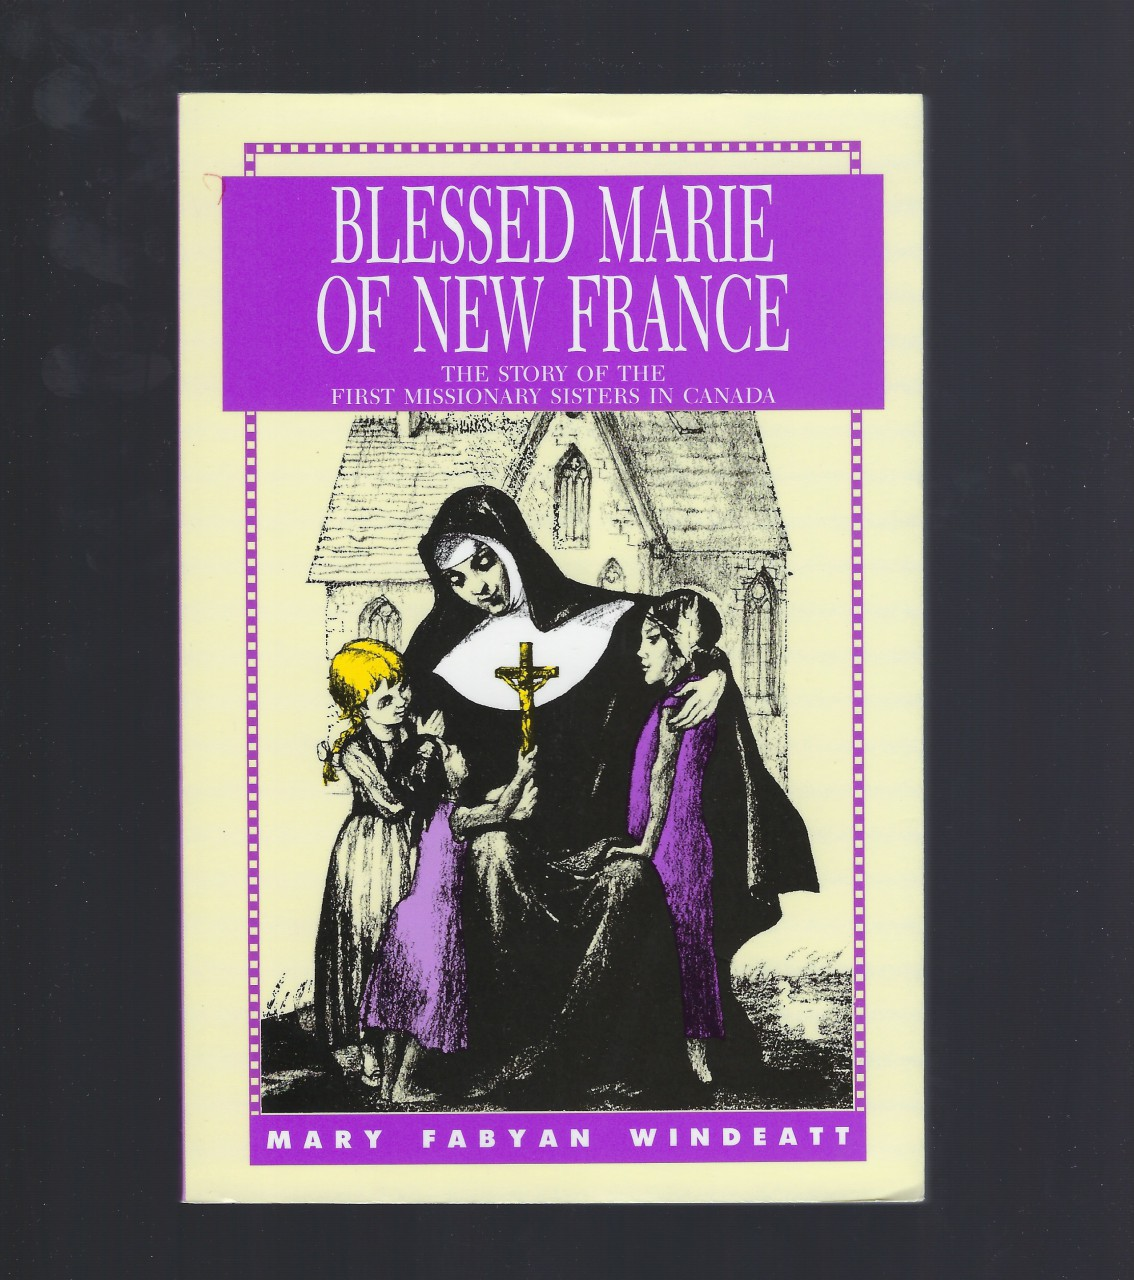 Blessed Marie Of New France (Windeatt), Mary Fabyan Windeatt